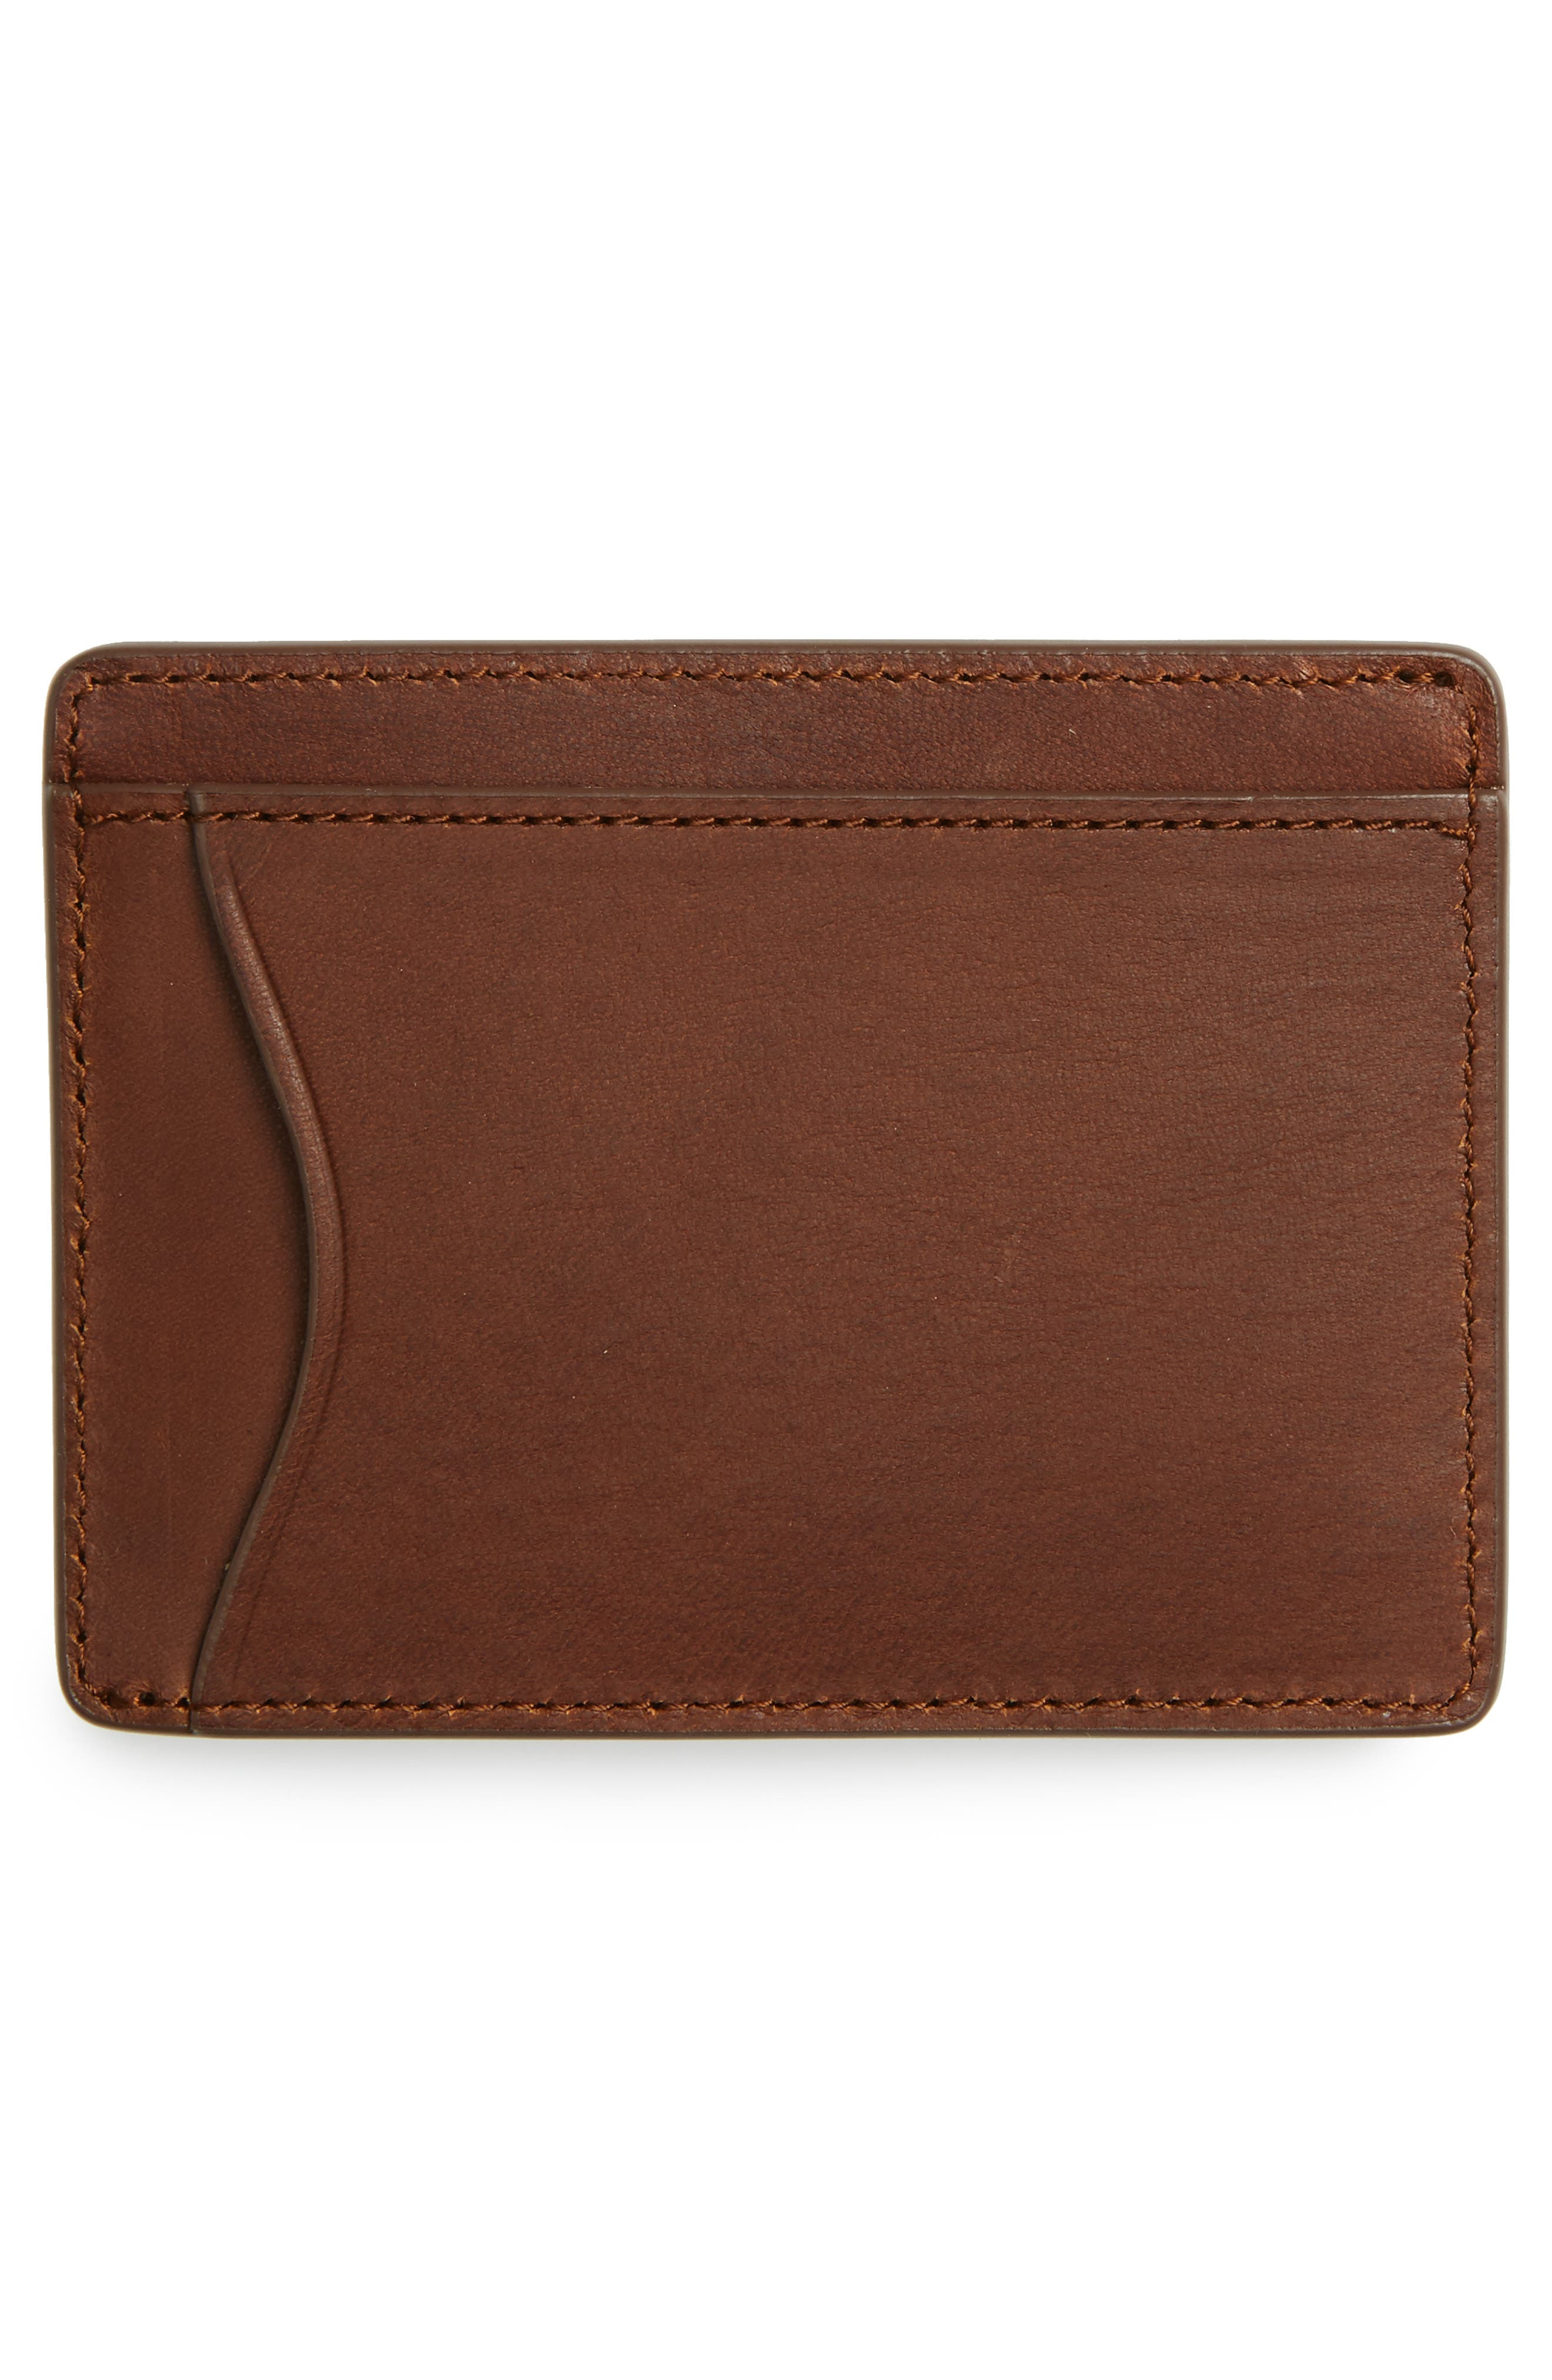 Leather Card Case,                             Alternate thumbnail 2, color,                             201